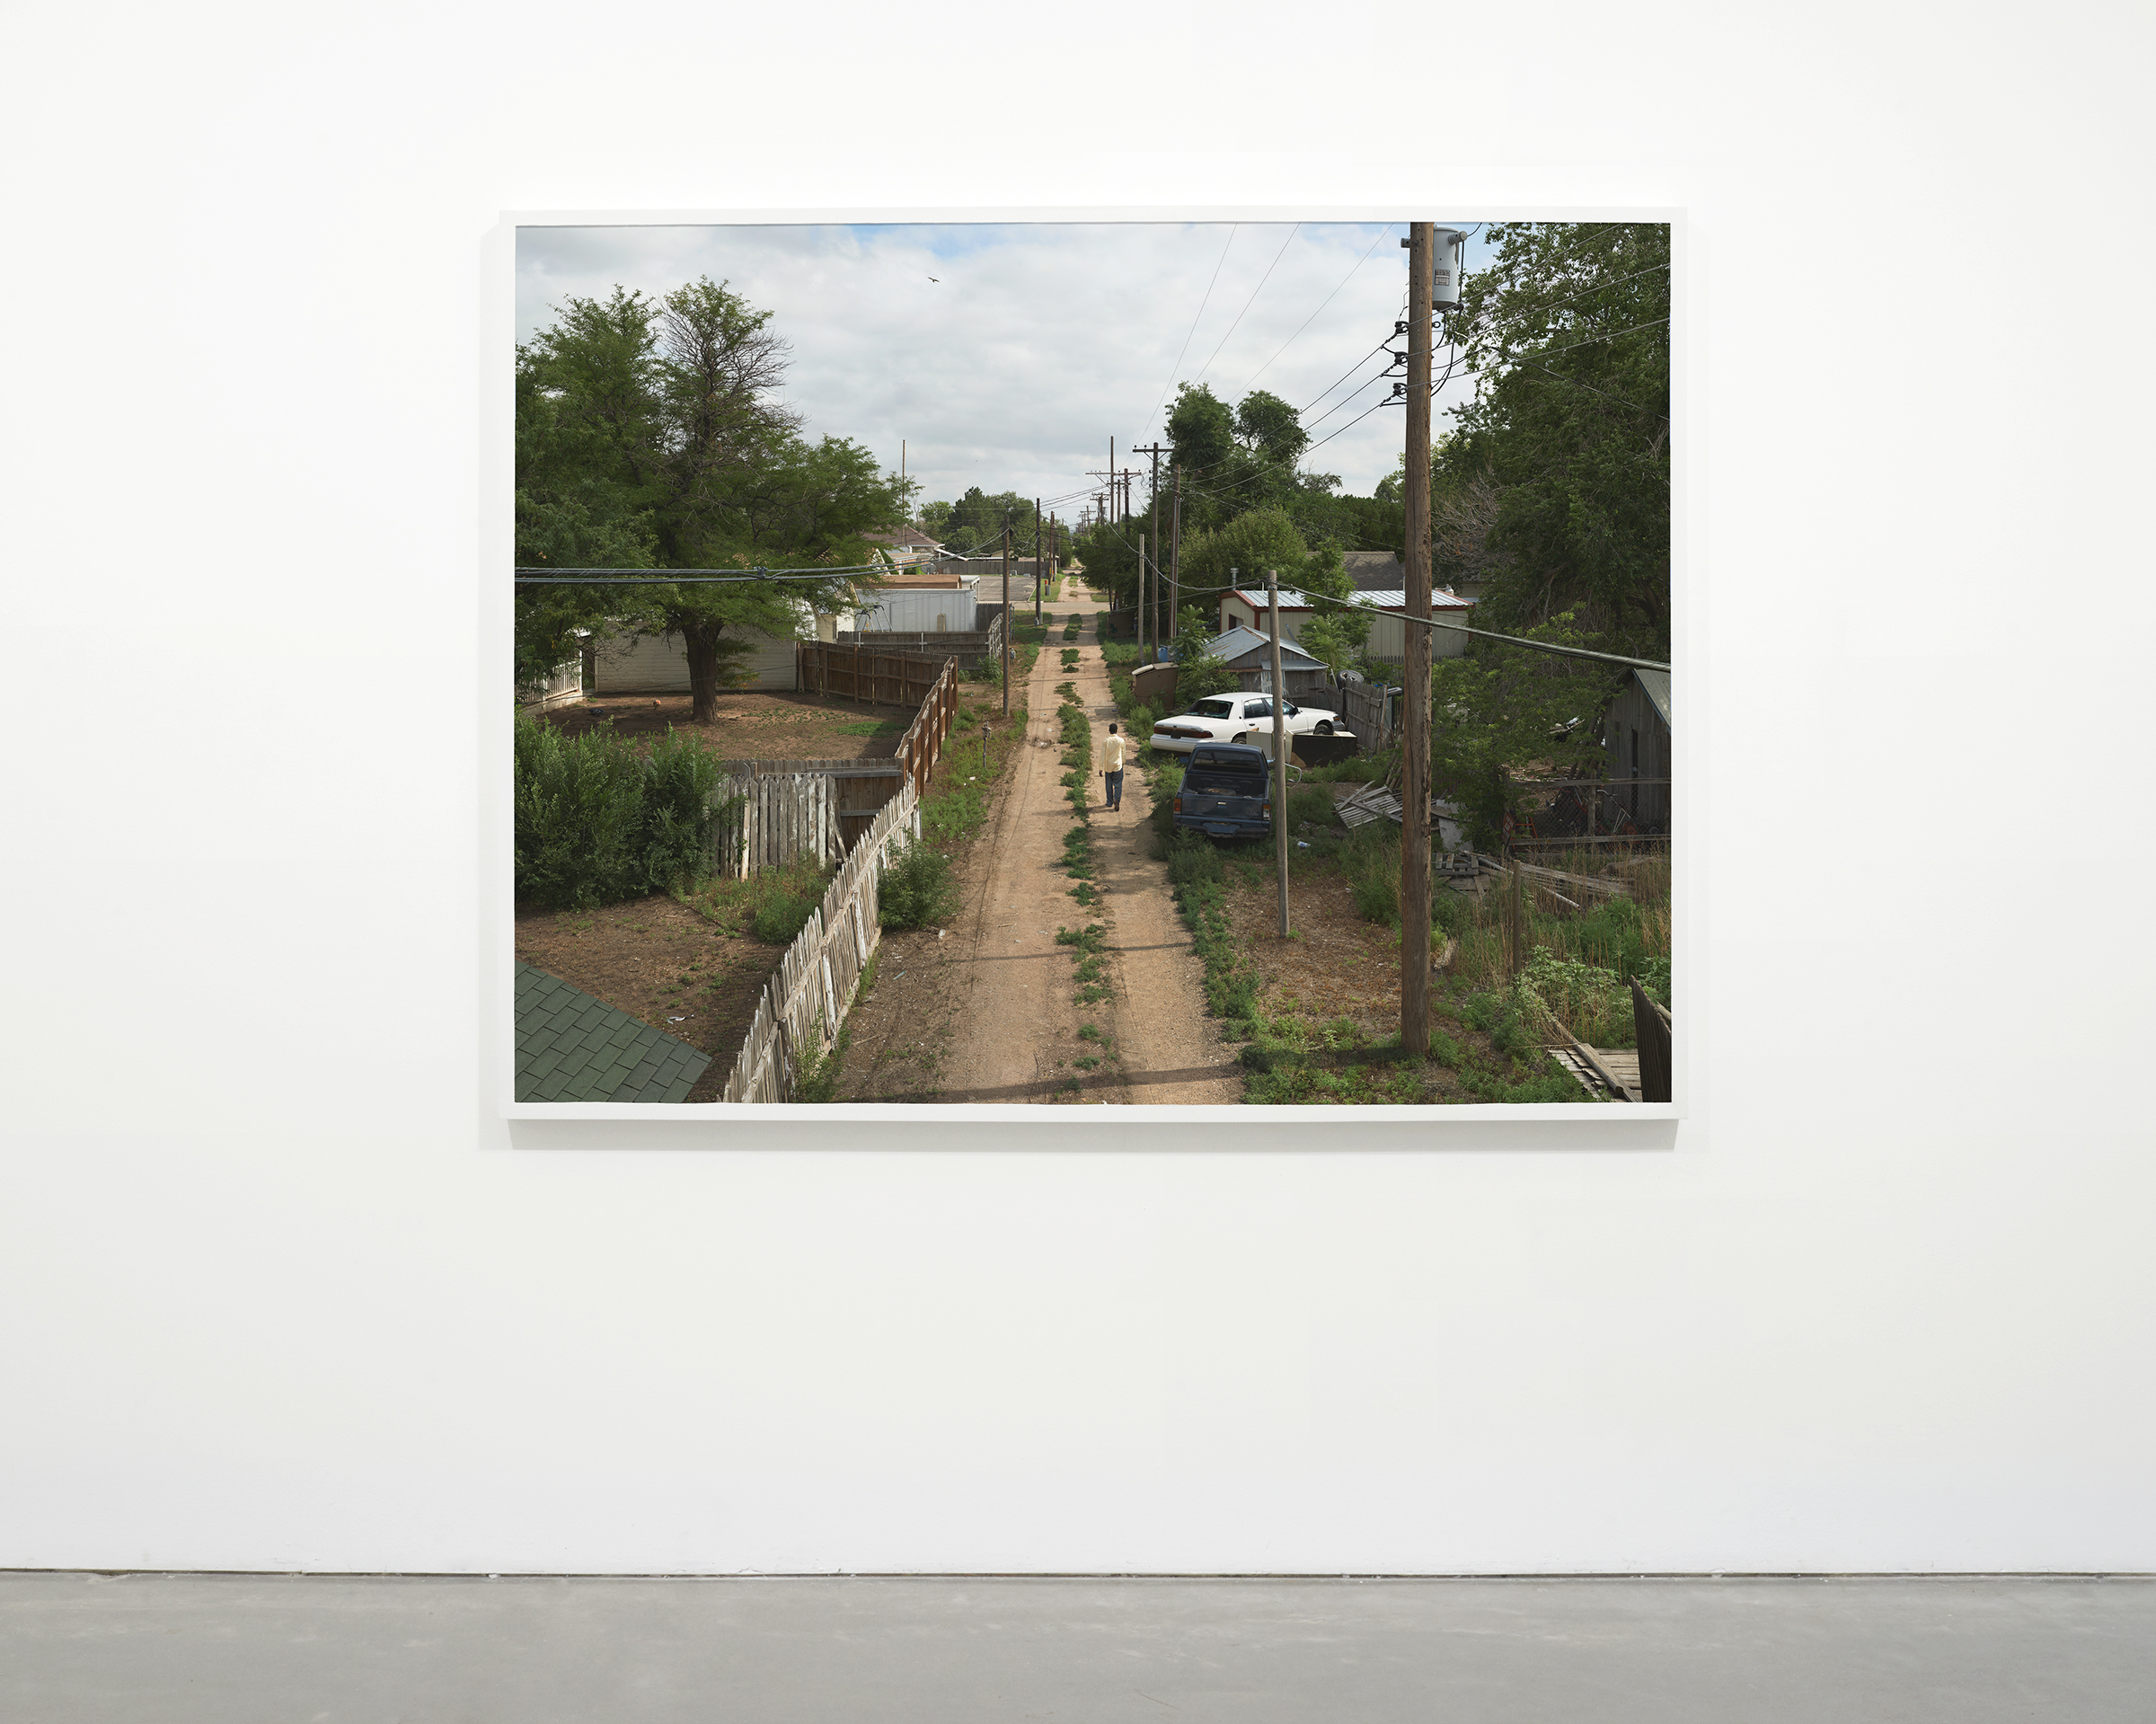 """""""Alley"""", 2013 - 2015  54 x 71.75 in (137.15 x 182.25 cm)"""